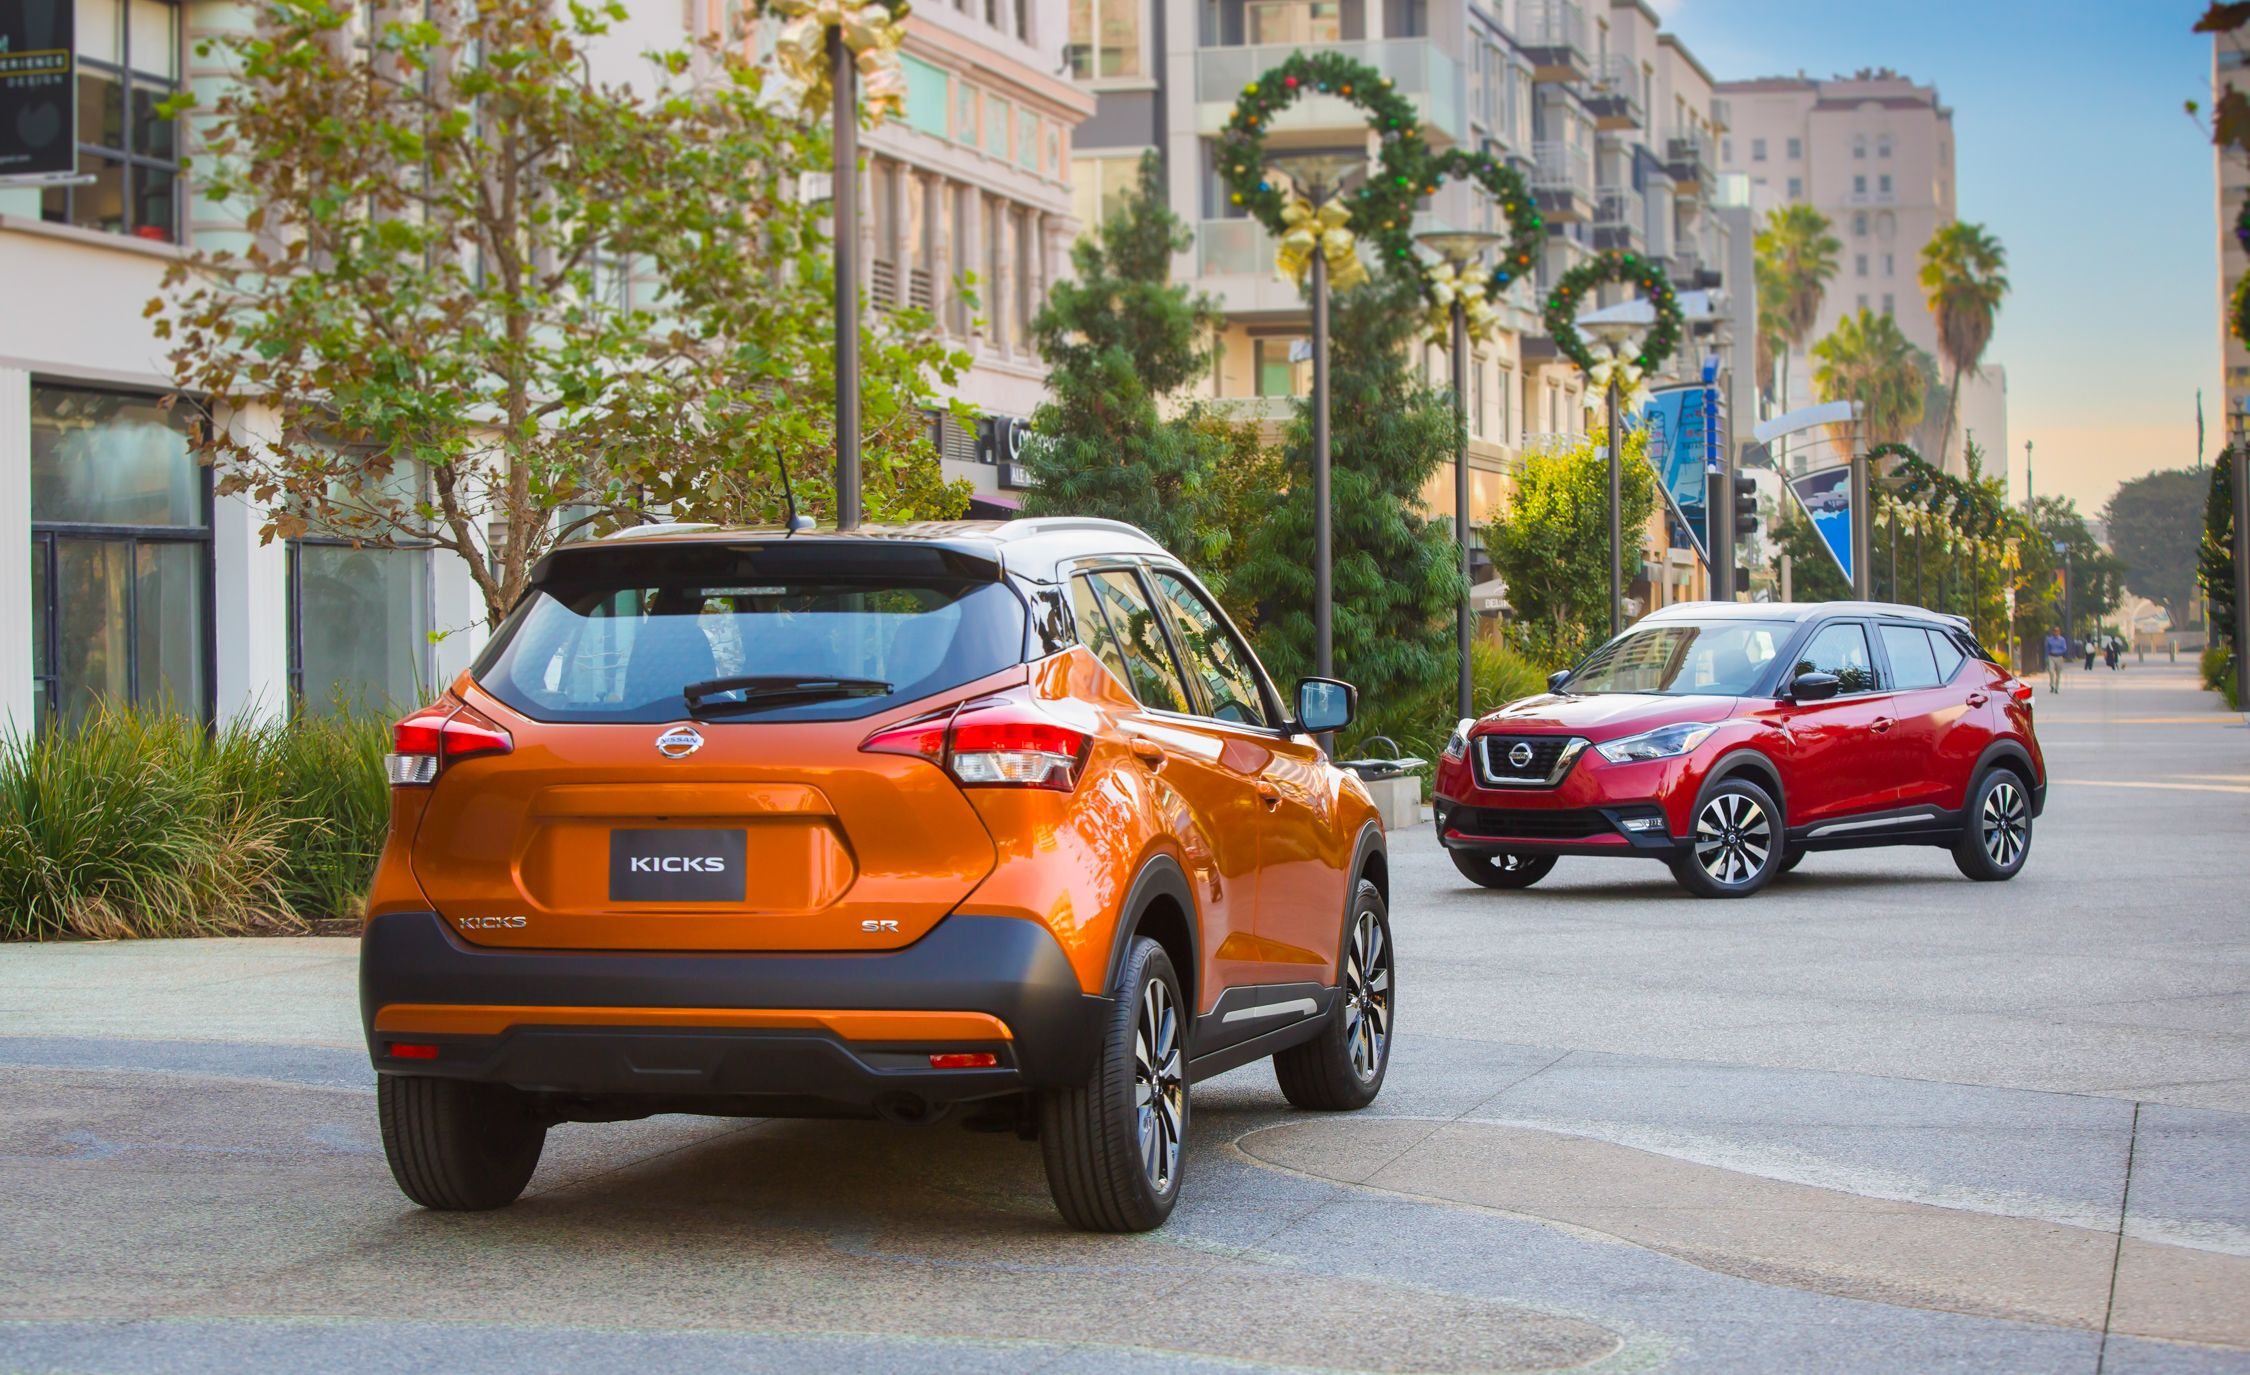 rogue roadshow in better models gets videos video best s suv still selling even nissan